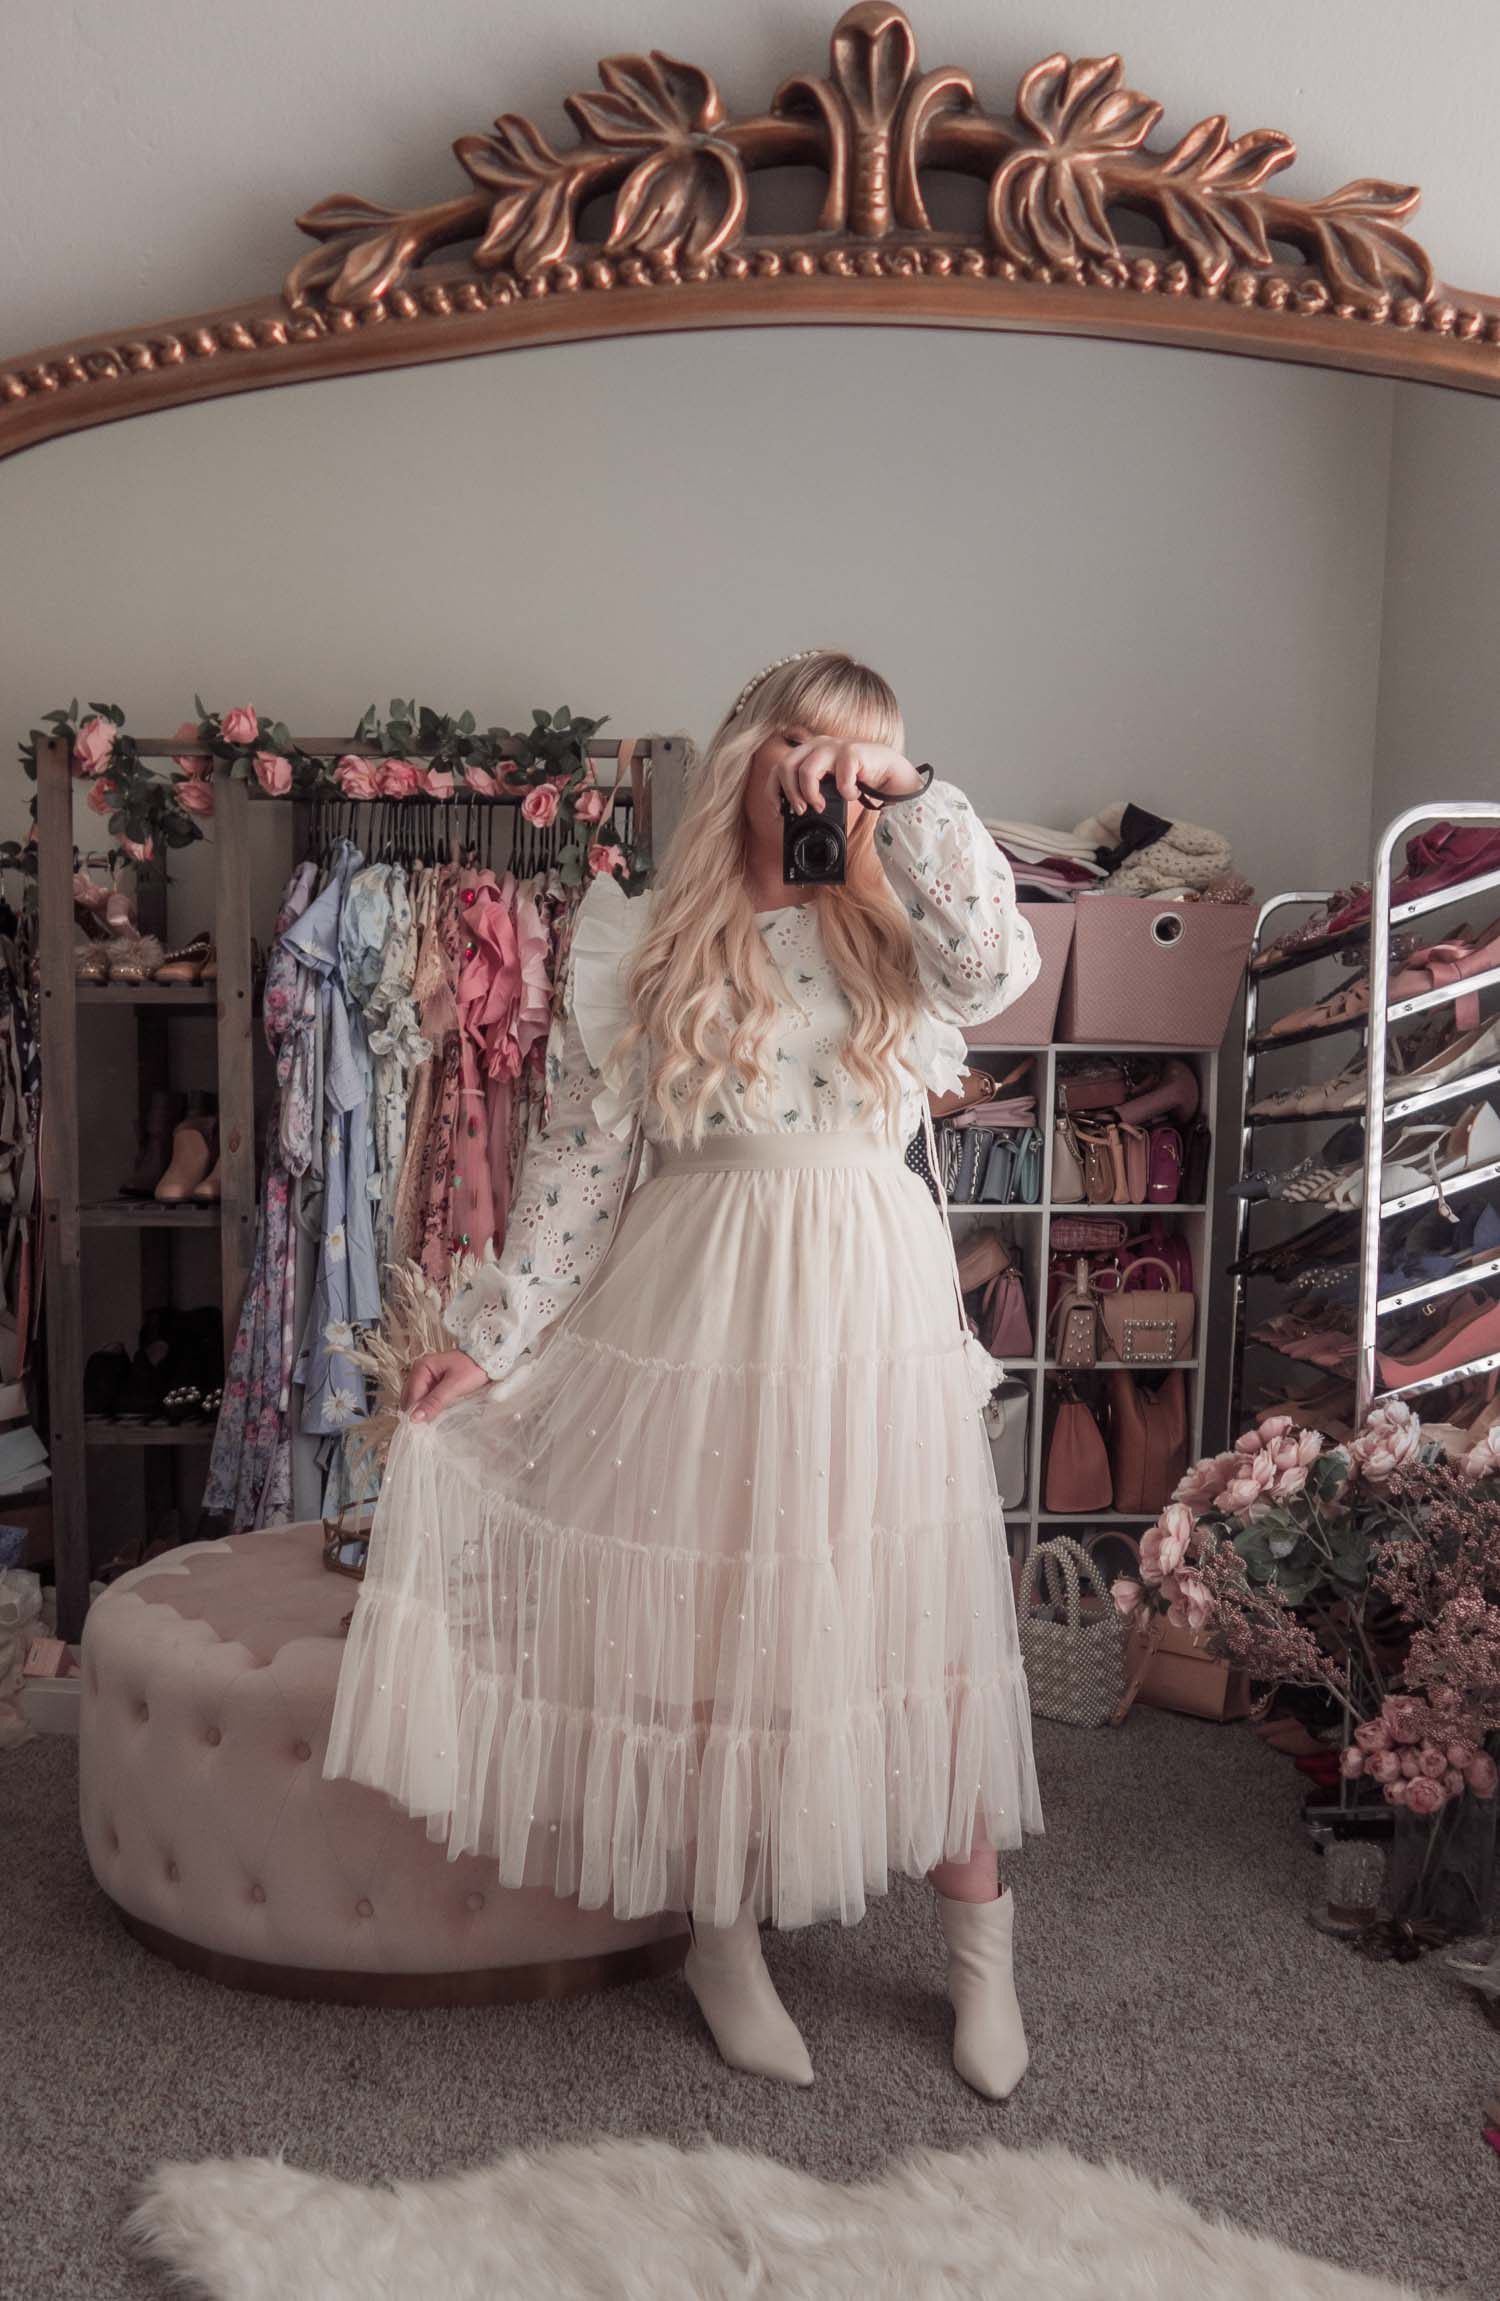 Feminine Fashion Blogger Elizabeth Hugen of Lizzie in Lace shares an updated Chicwish review and styles 4 spring outfit ideas including a white floral top and Chicwish tulle skirt